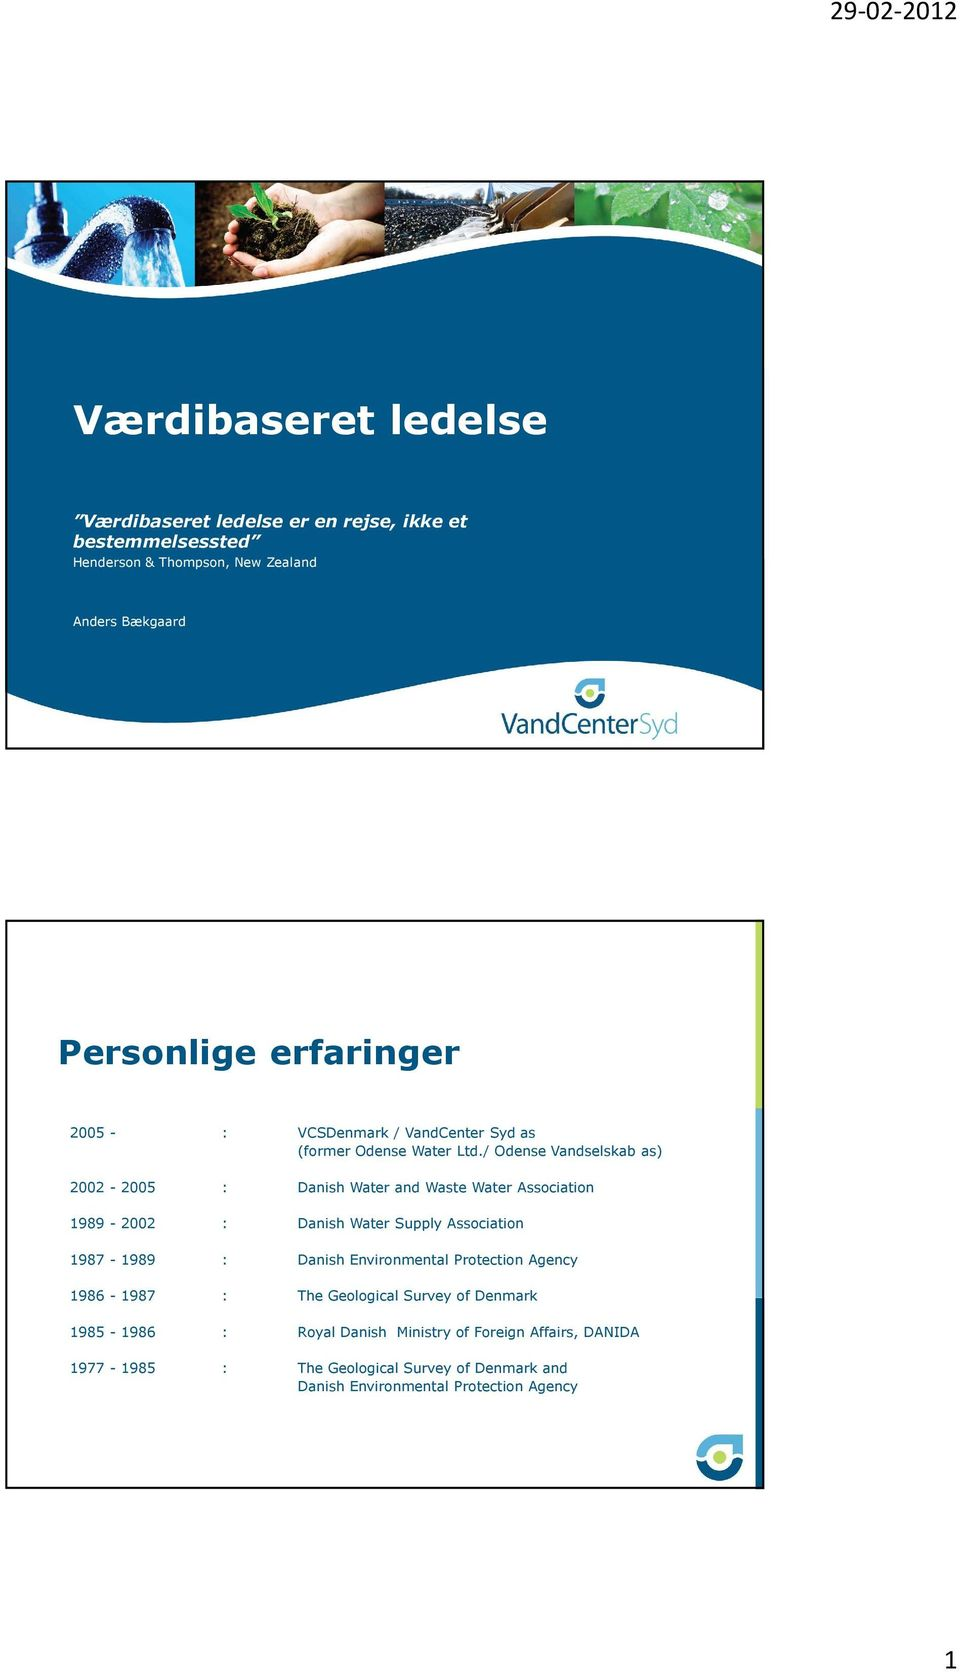 / Odense Vandselskab as) 2002-2005 : Danish Water and Waste Water Association 1989-2002 : Danish Water Supply Association 1987-1989 : Danish